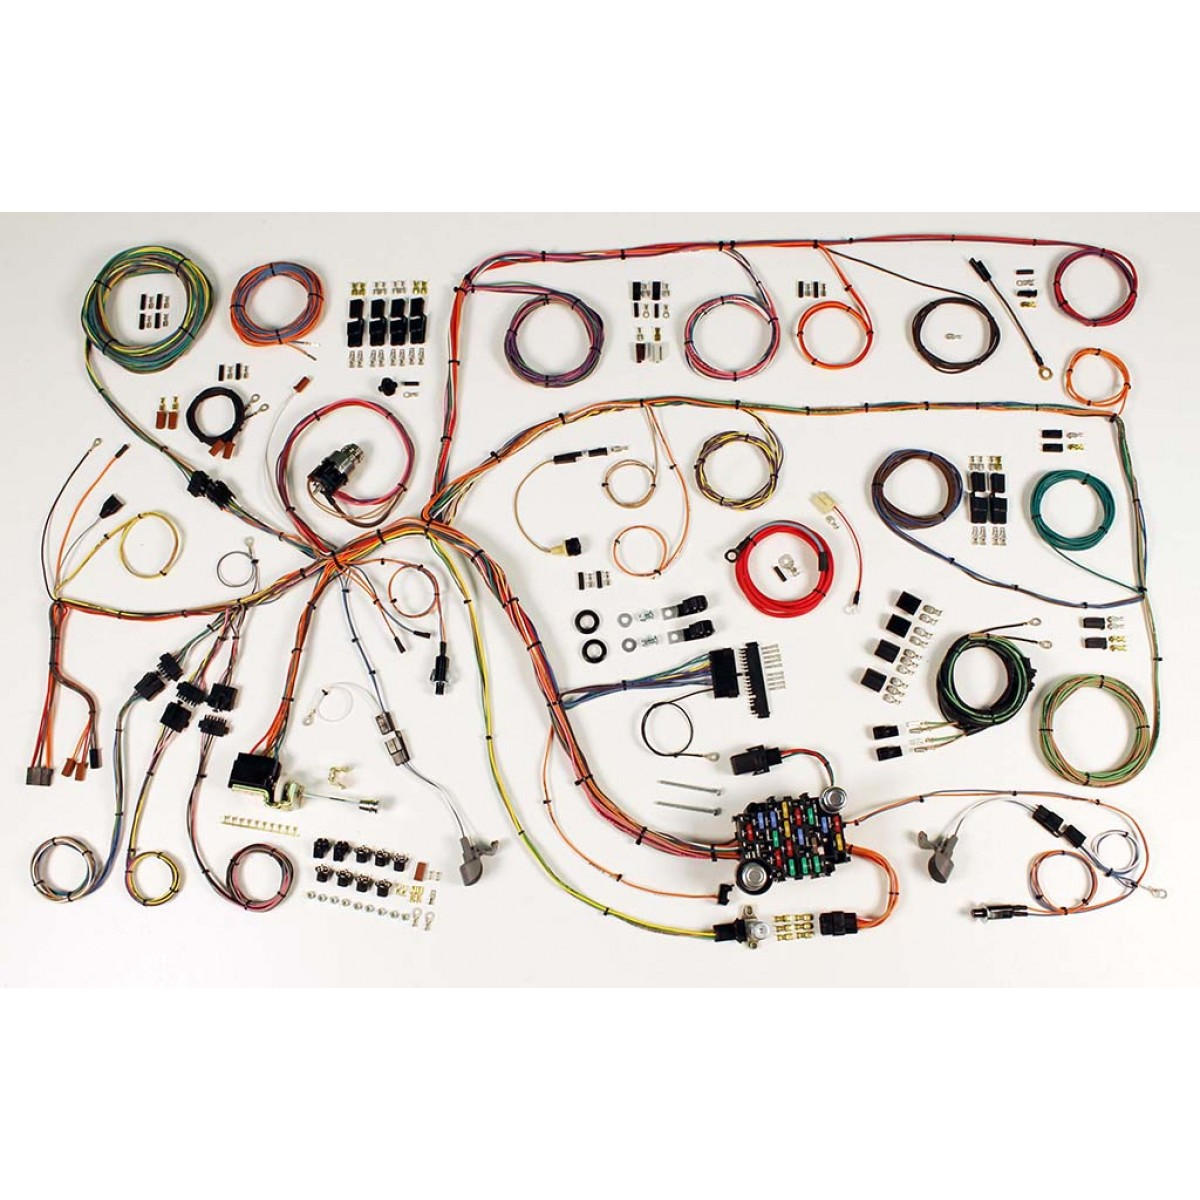 510379 complete wiring harness kit 1960 1964 ford falcon 1960 1965 mercury comet part 510379 1960 1964 ford falcon complete wiring harness kit 1960 1964 ford ford truck wiring harness kits at alyssarenee.co